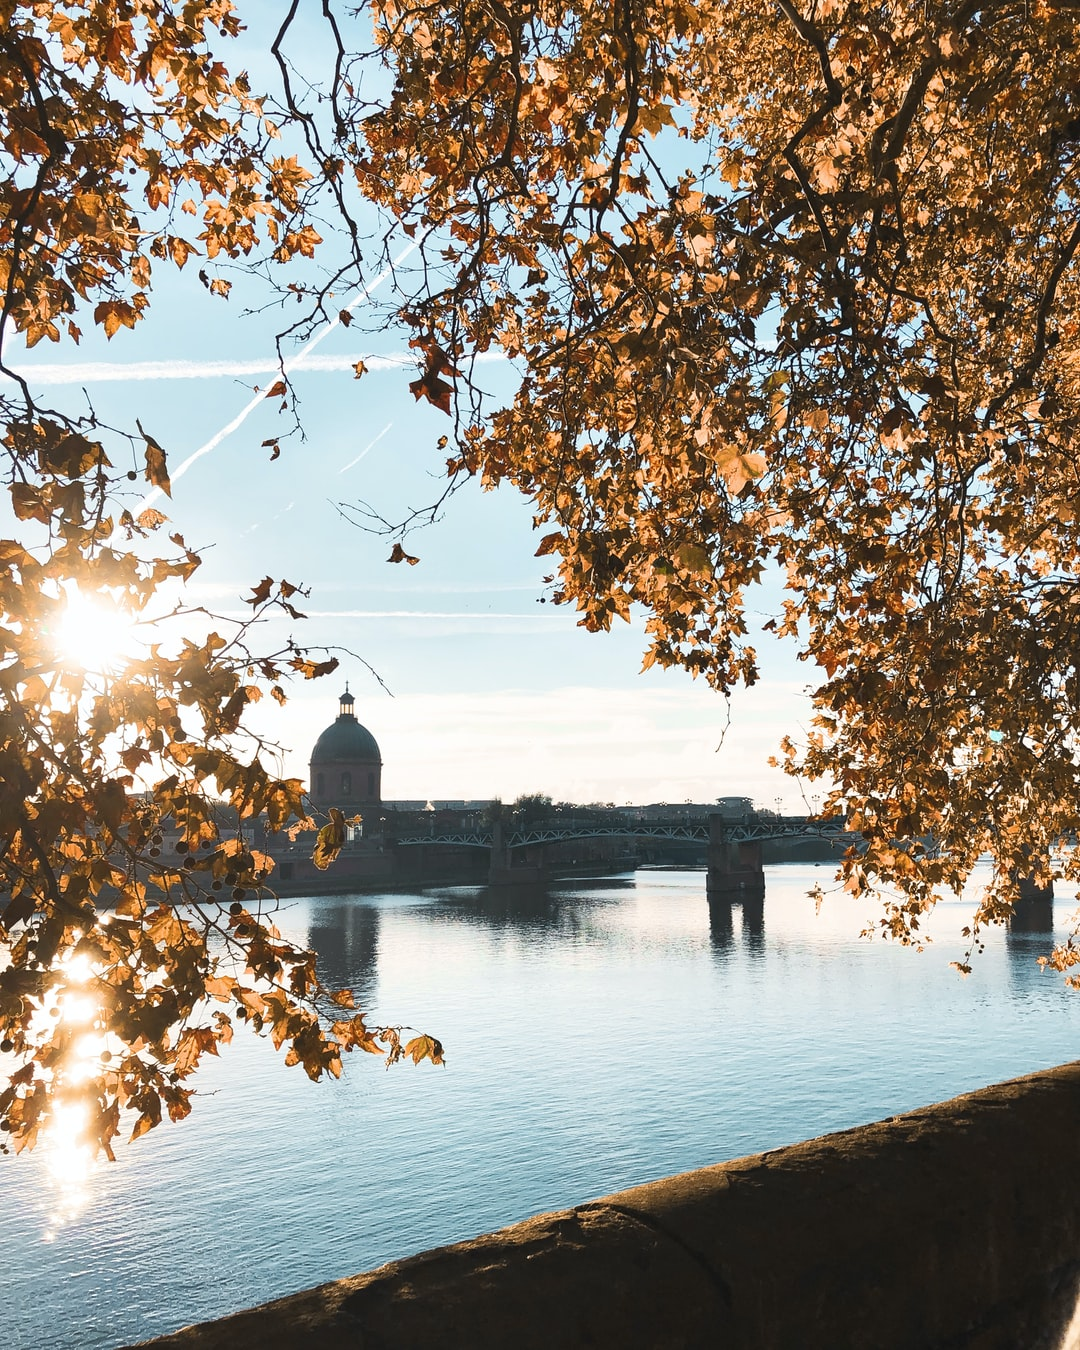 I was walking along the Garonne River in Toulouse, in the south of France, when the sun's rays hit my face through the leaves. I turned my head and this beautiful landscape was there in front of me.